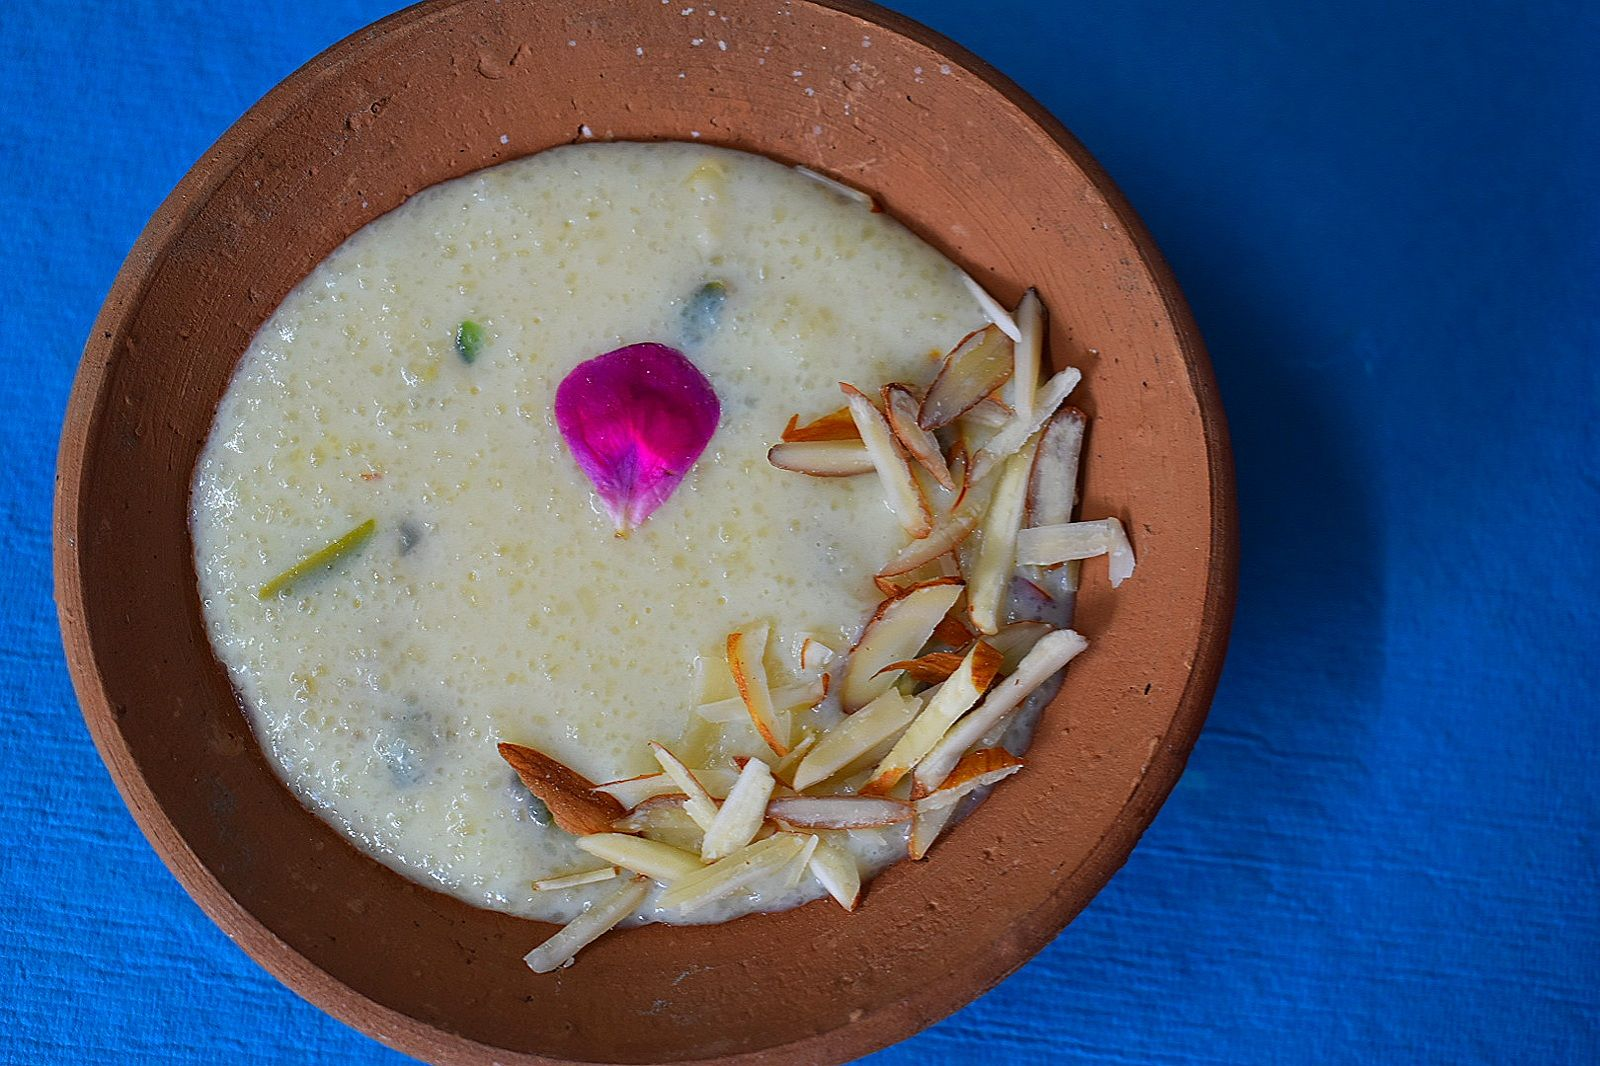 Phirni Recipe Firni Recipe How To Make Phirni Recipe At Home Phirni Recipe Recipes Using Condensed Milk Homemade Condensed Milk